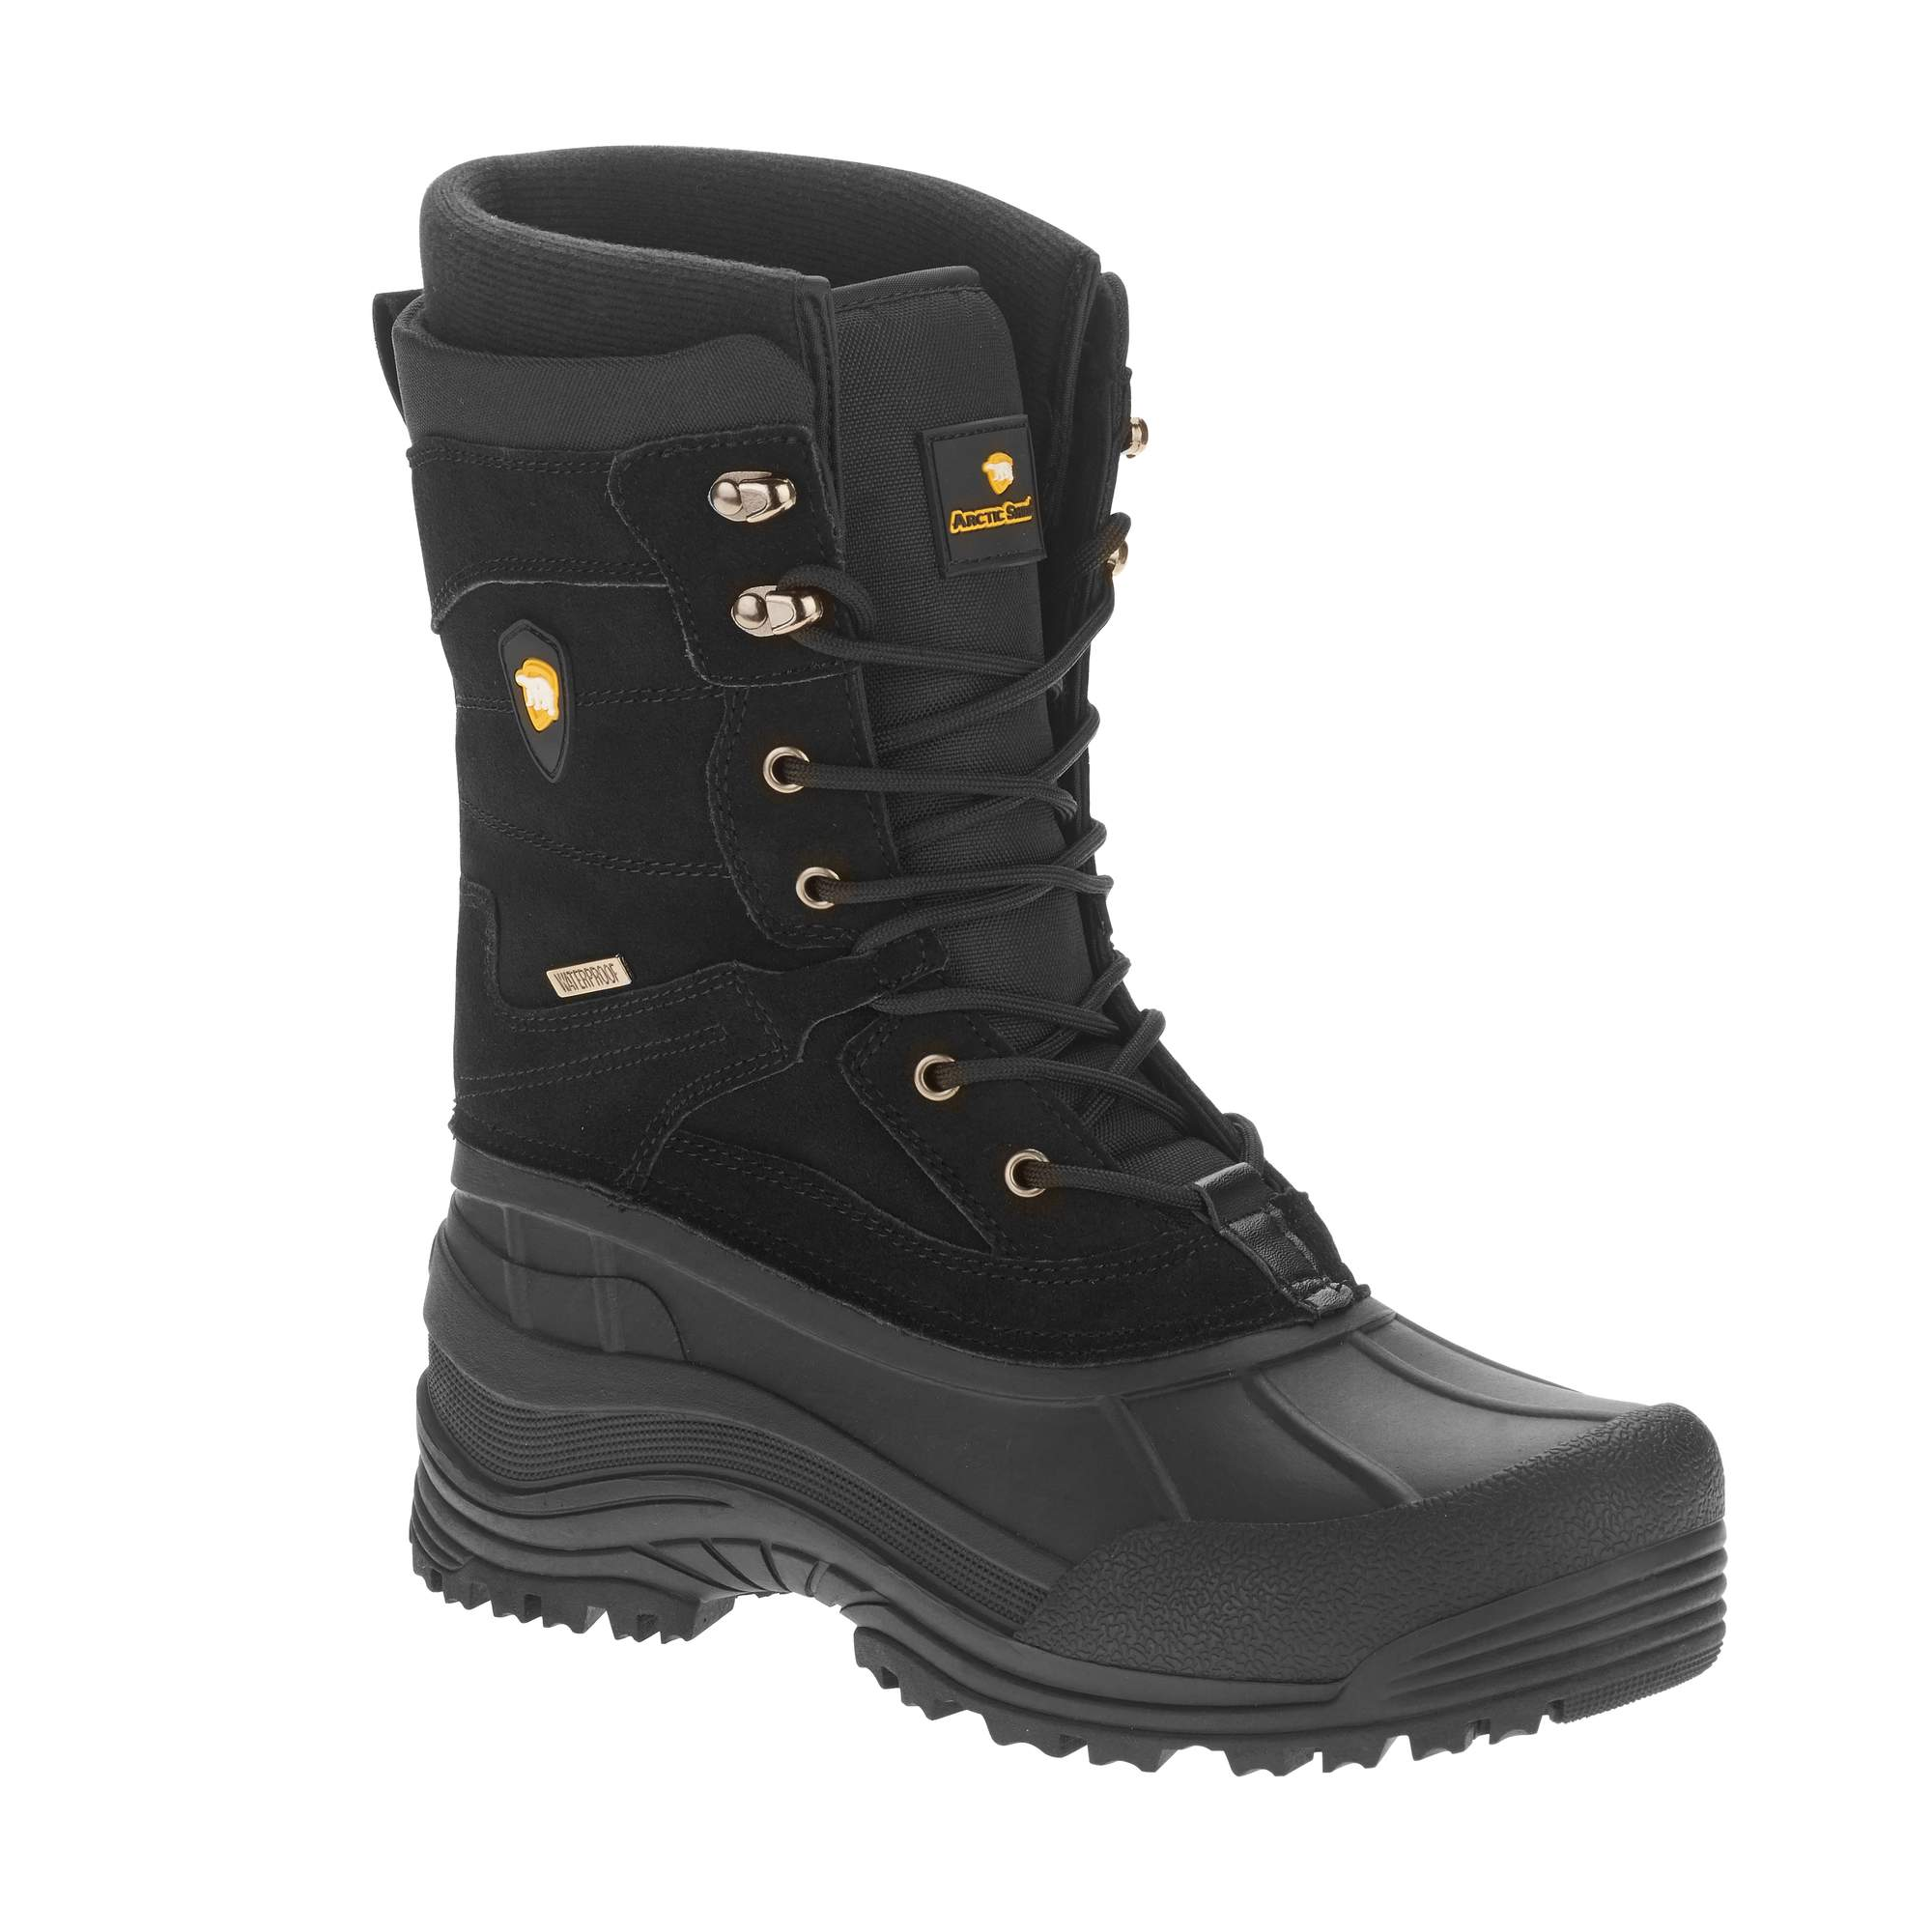 Image of Arctic Shield Men's Tall Winter Boot